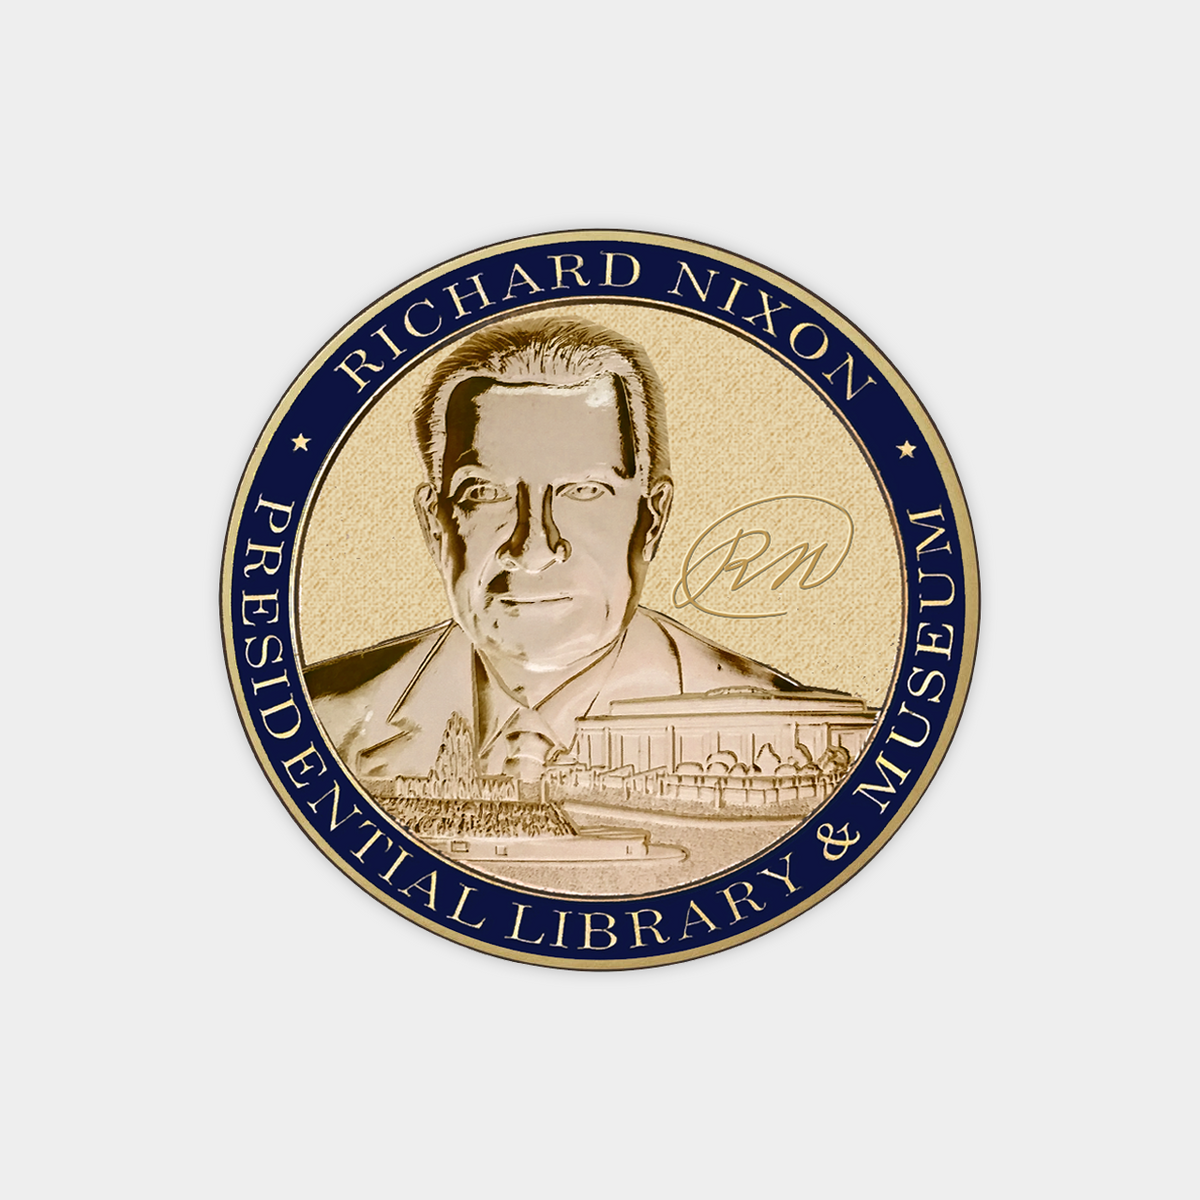 Find Beverly Nixon On Pinterest: Richard Nixon Presidential Library & Museum Coin